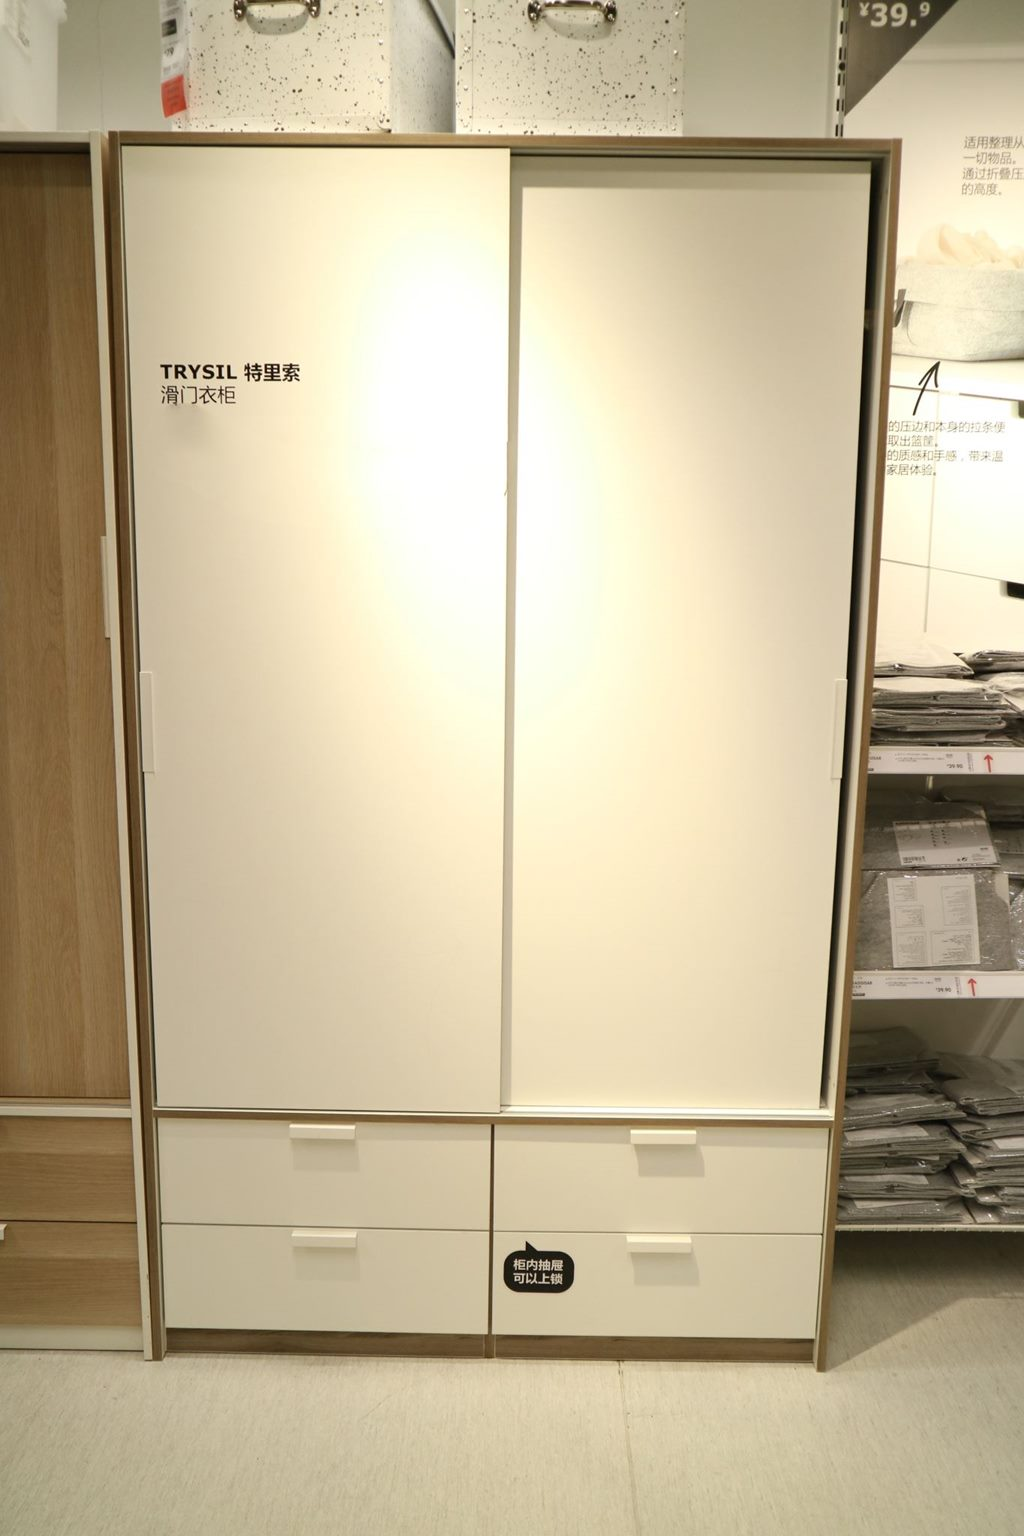 Christchurch Ikea Trysil Wardrobe With Sliding Doors 4 Drawers White